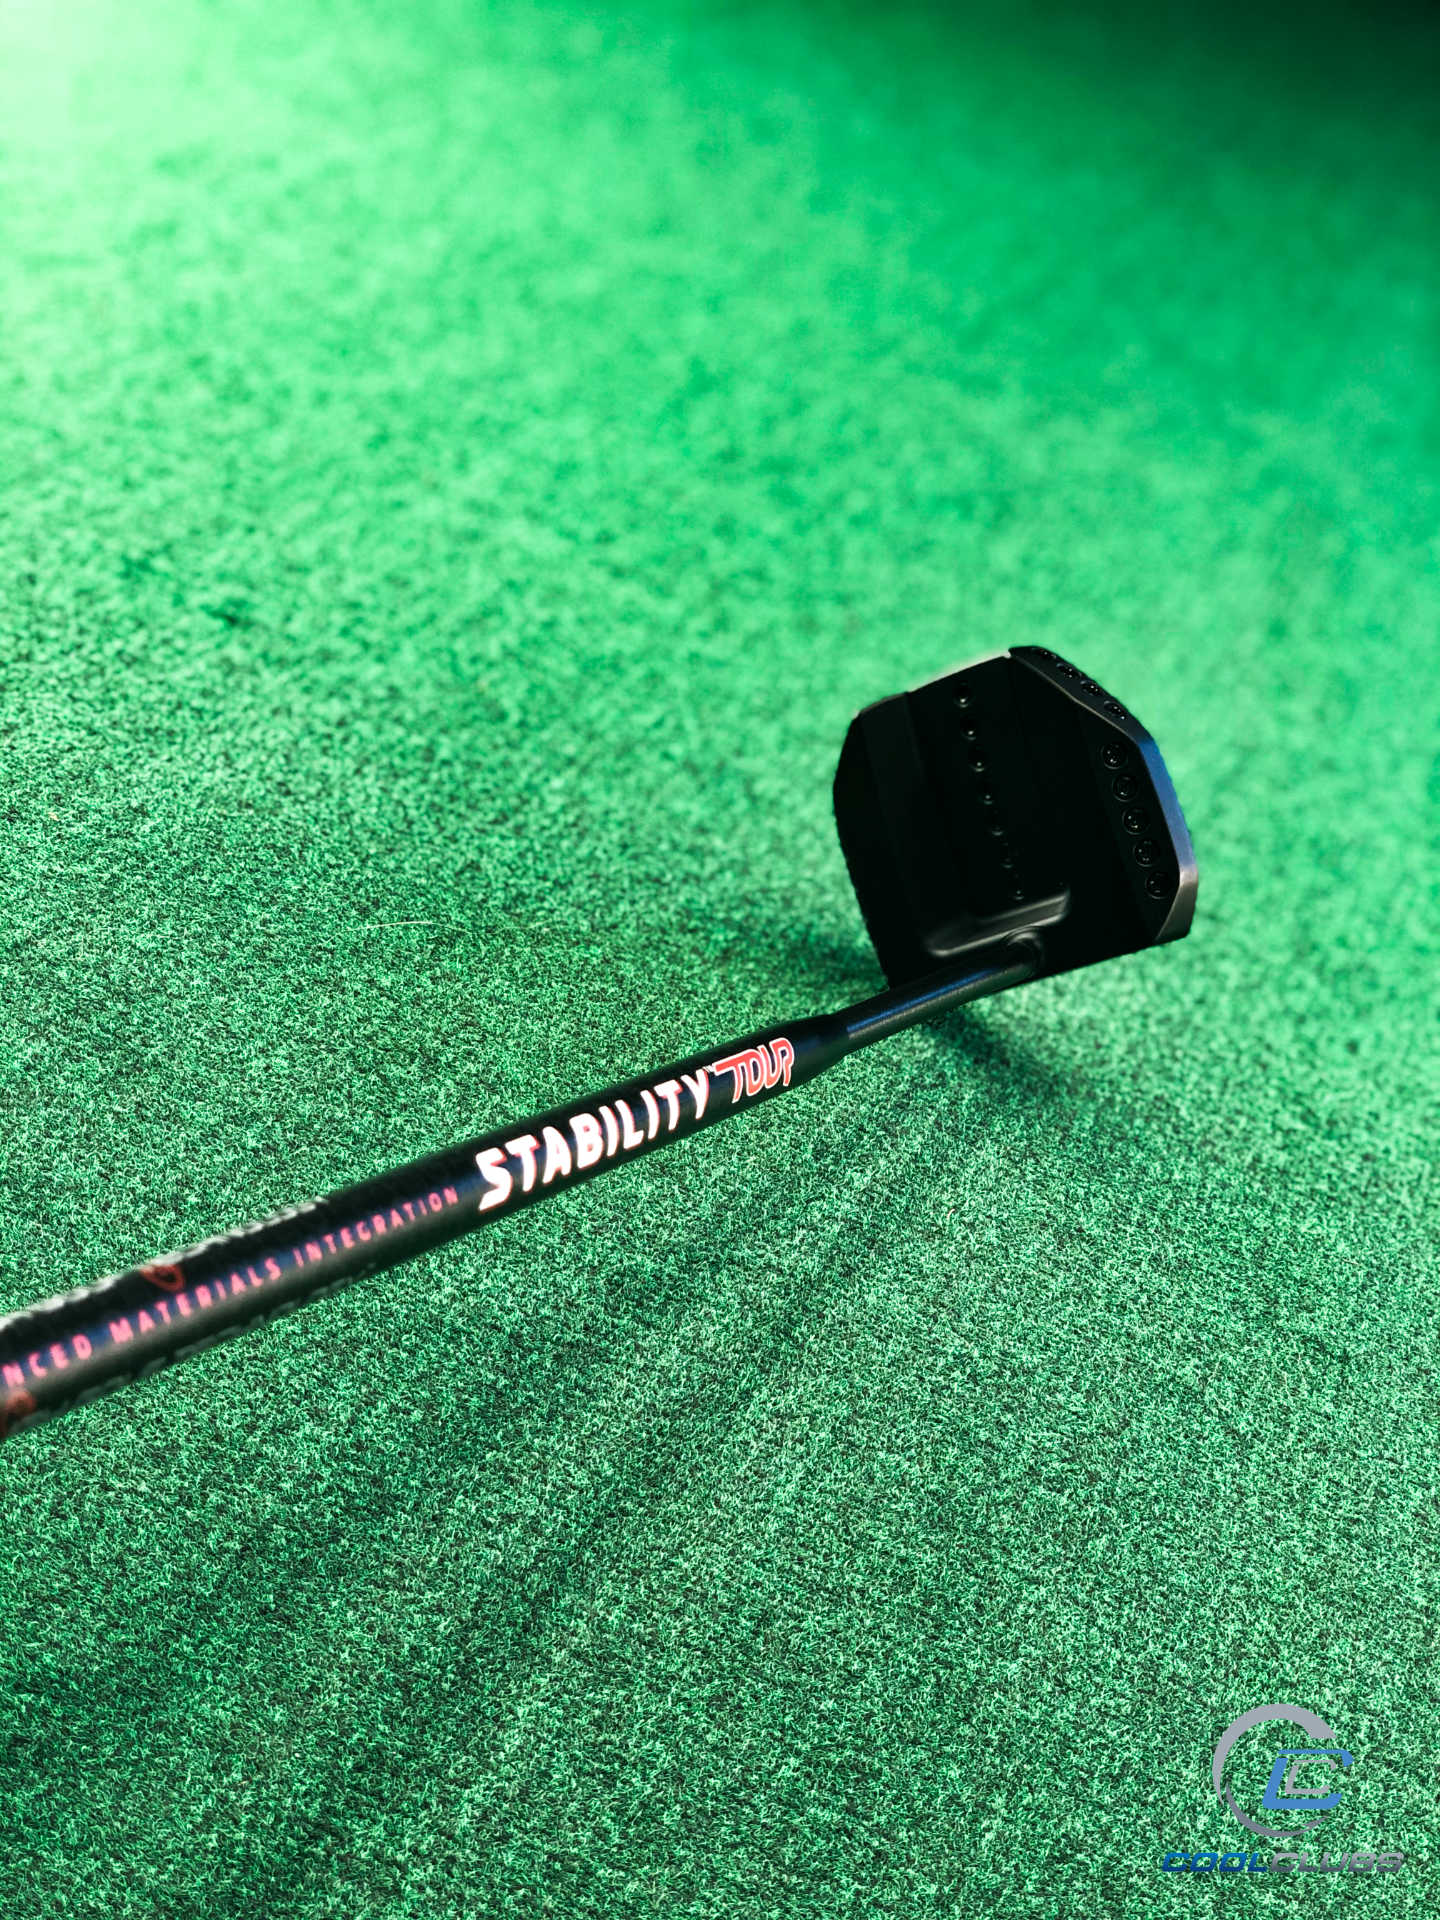 Stability Tour Shaft into a @PXG Drone Centre ShaftGarsen Max Grip